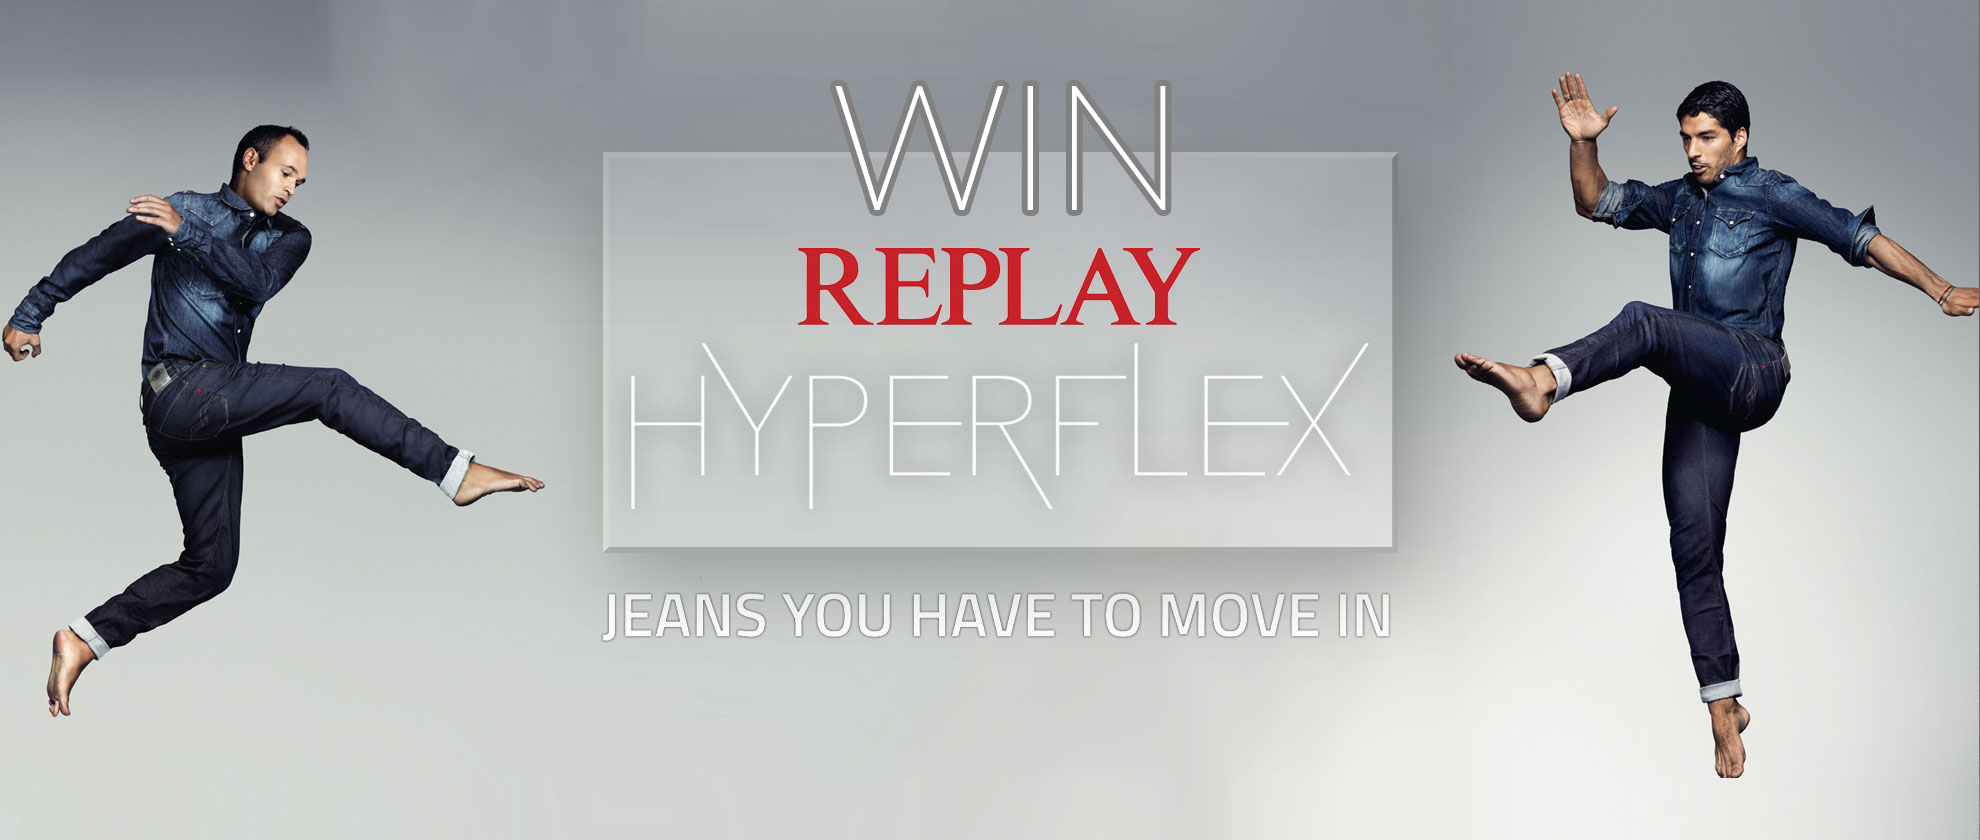 Get Moving to Win a Pair of Replay Hyperflex Jeans!